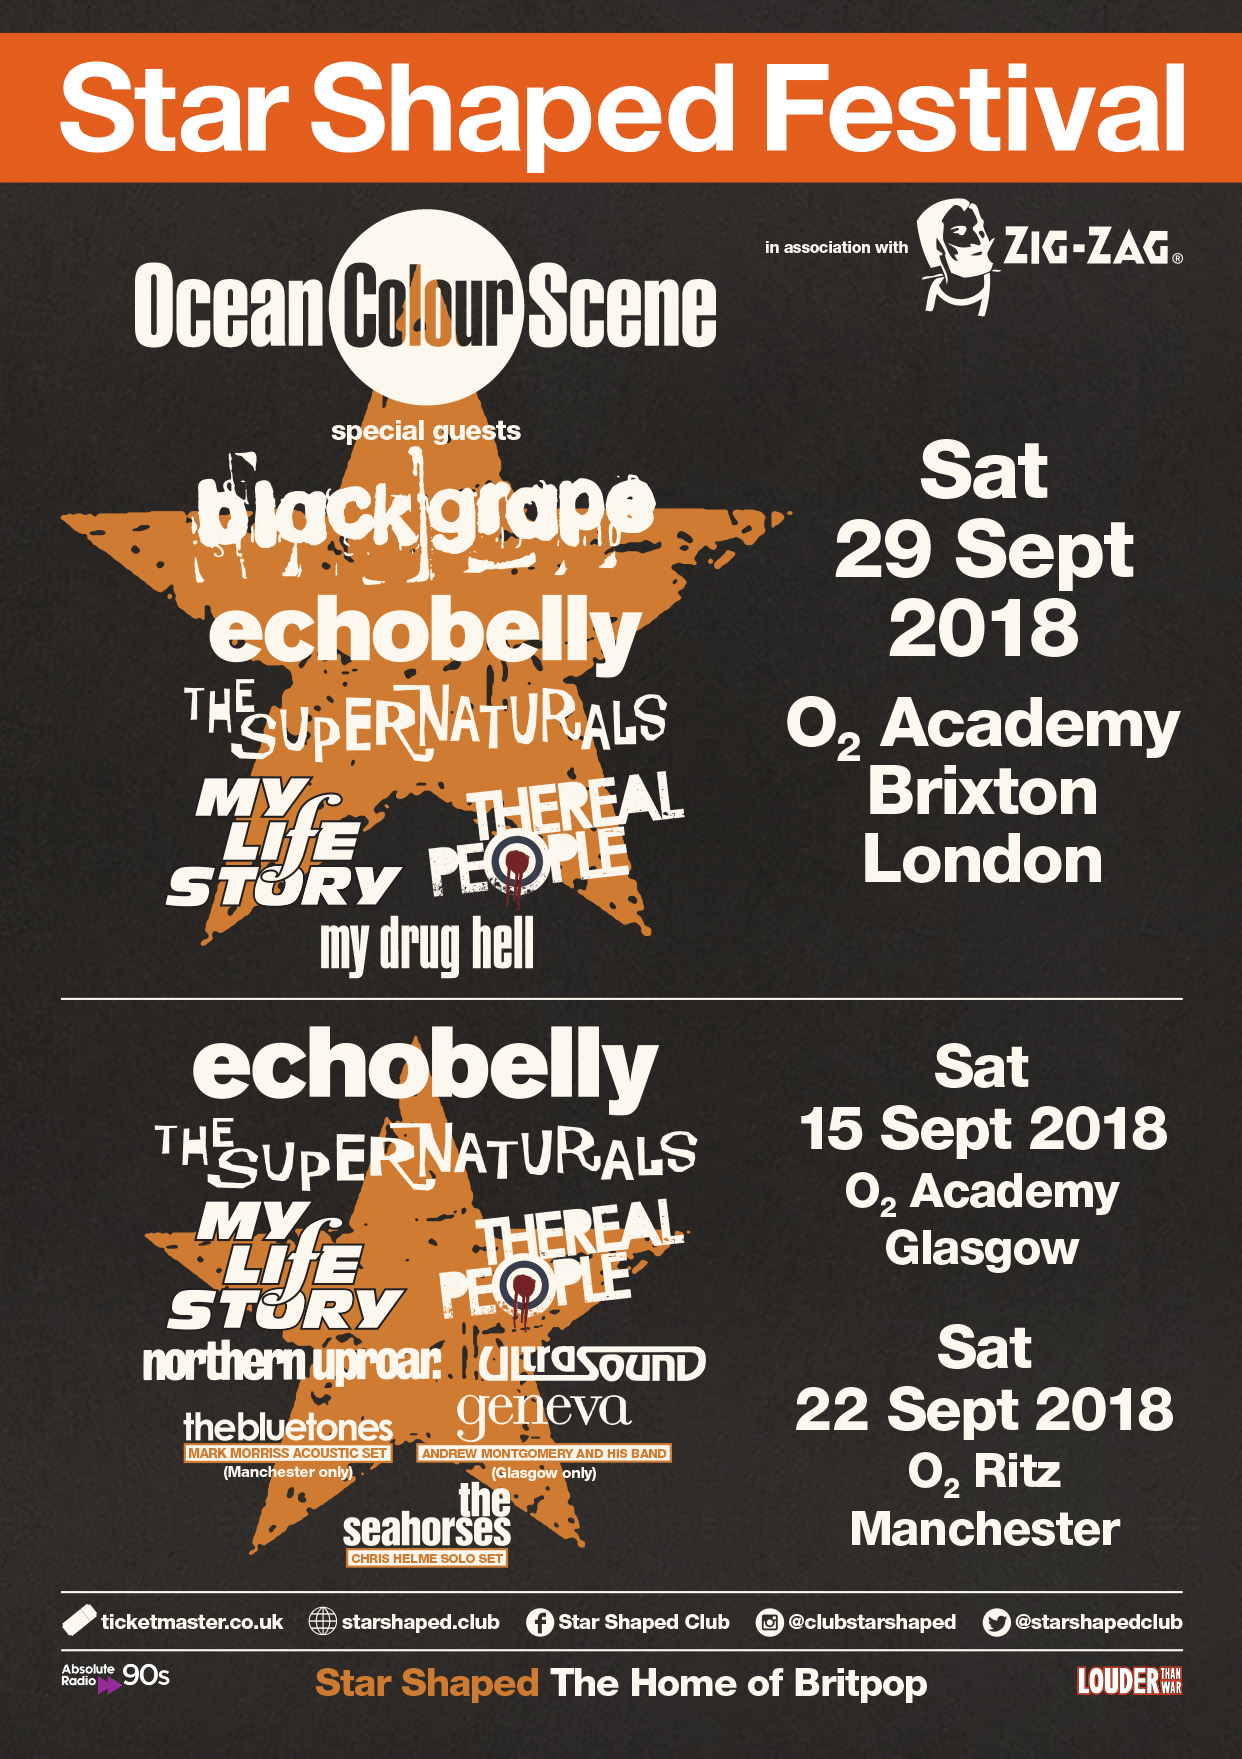 Star Shaped Festival 2018 - The one-day Britpop festival!